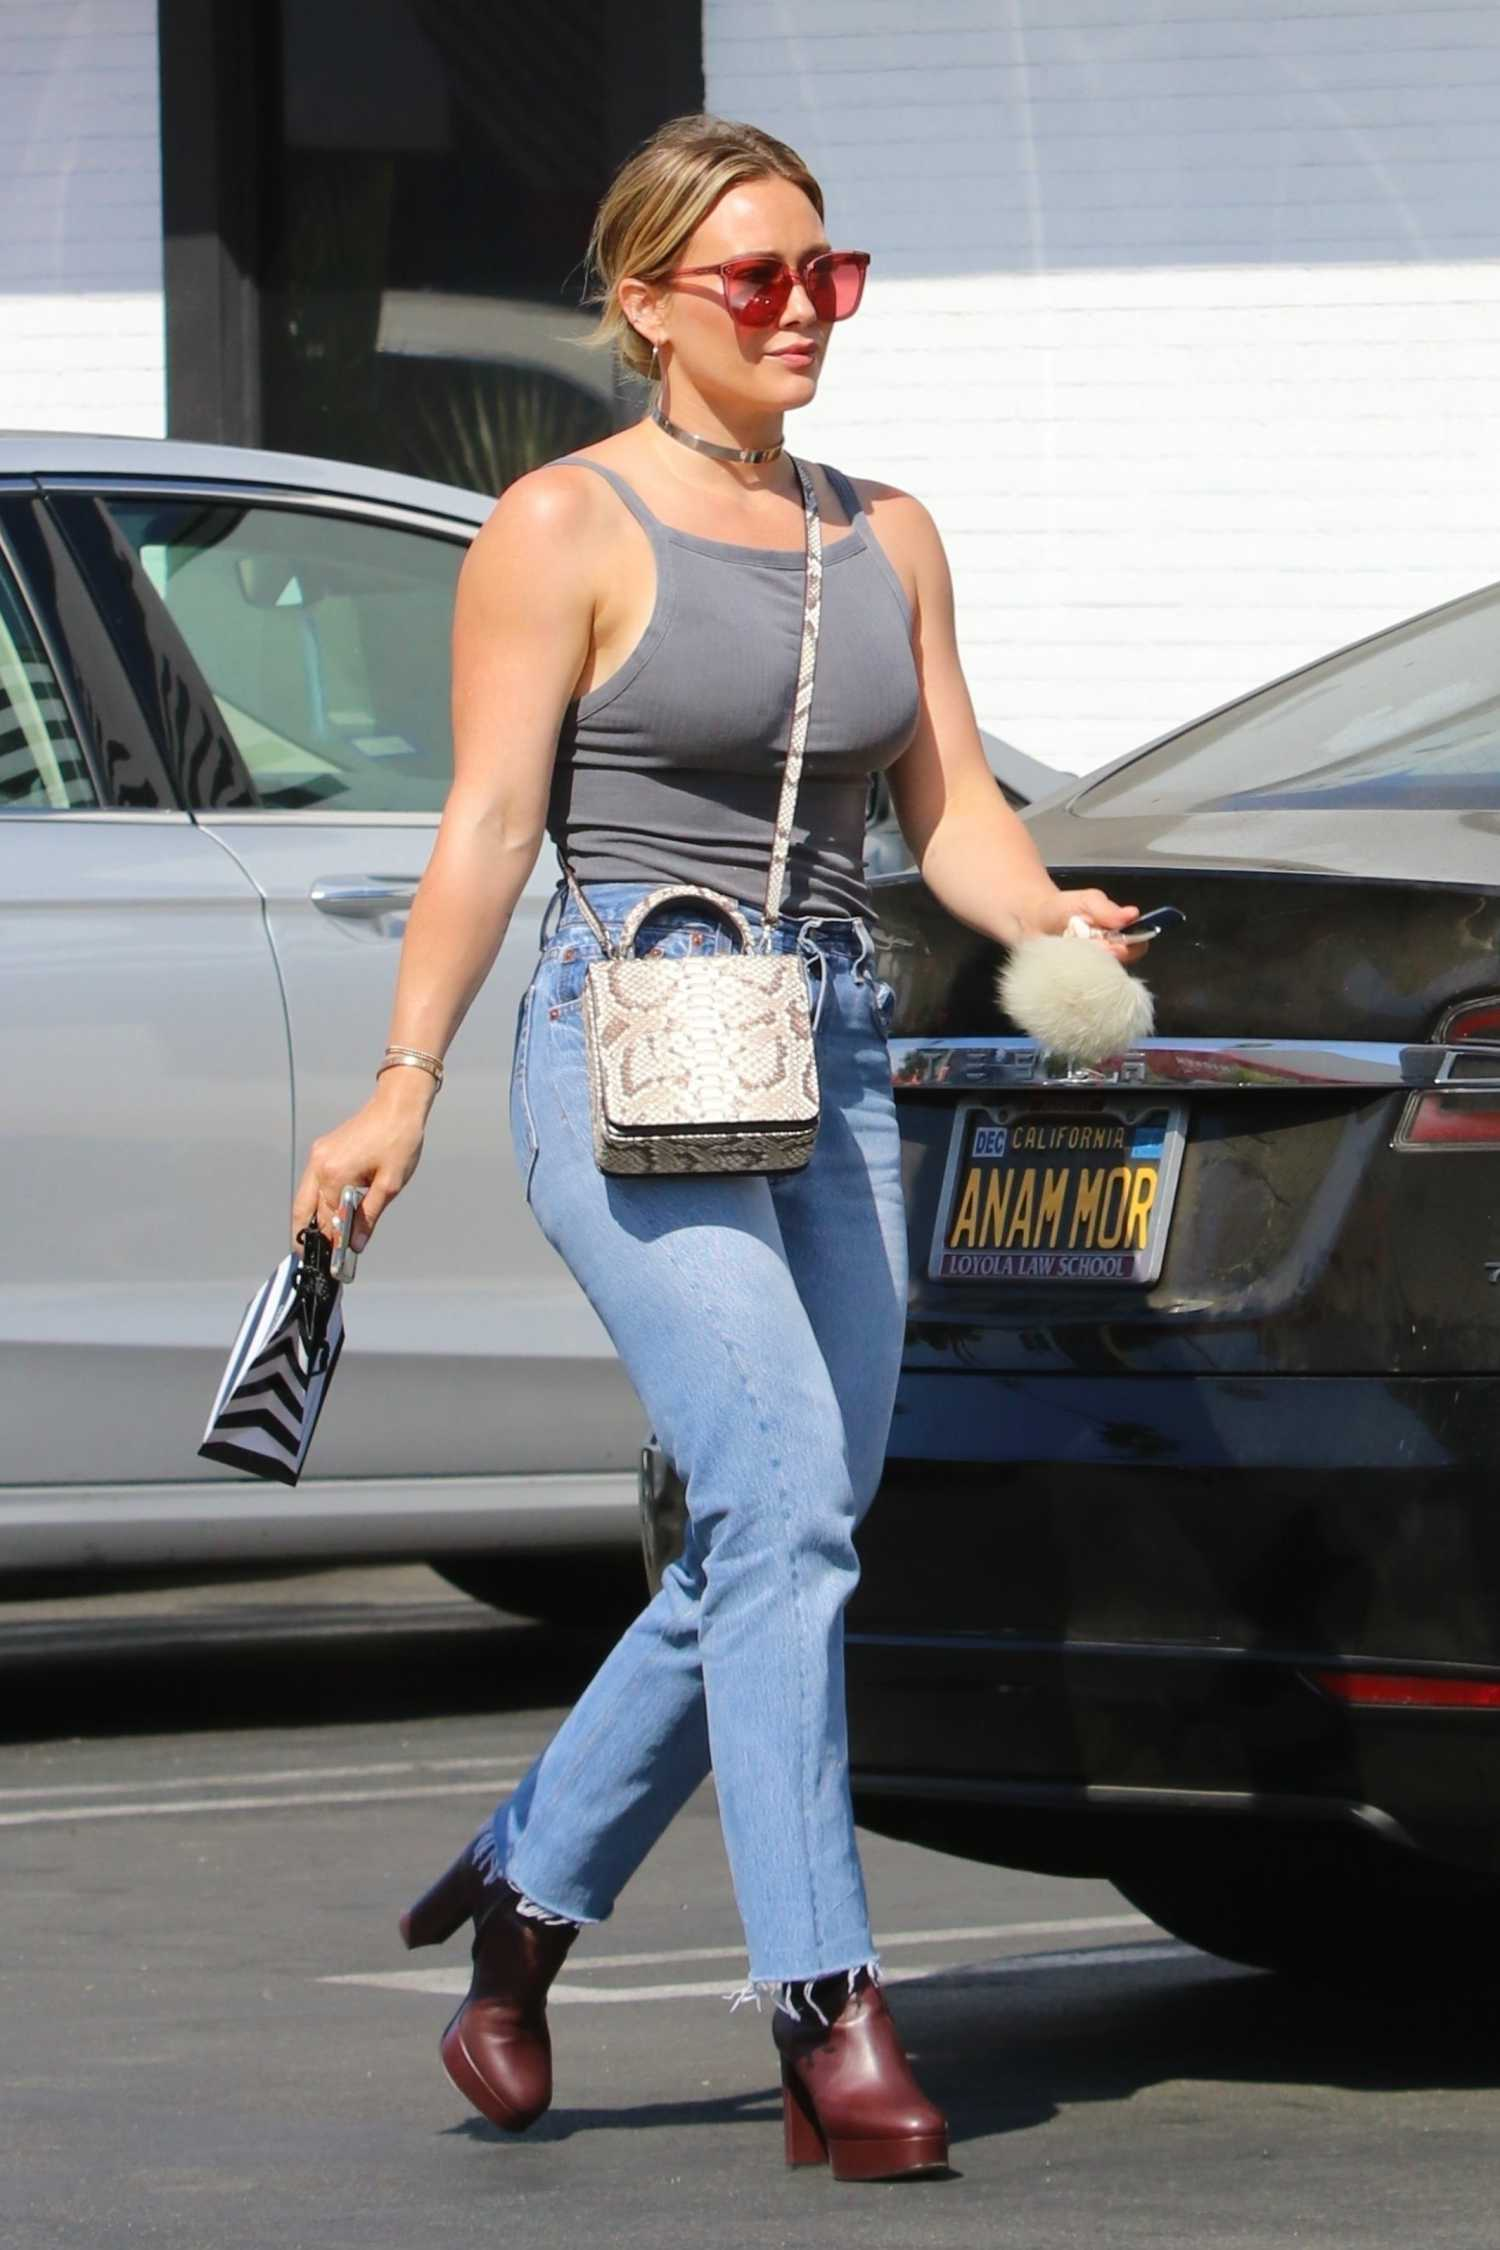 Hilary Duff in a Gray Top Goes Shopping at Sephora Store